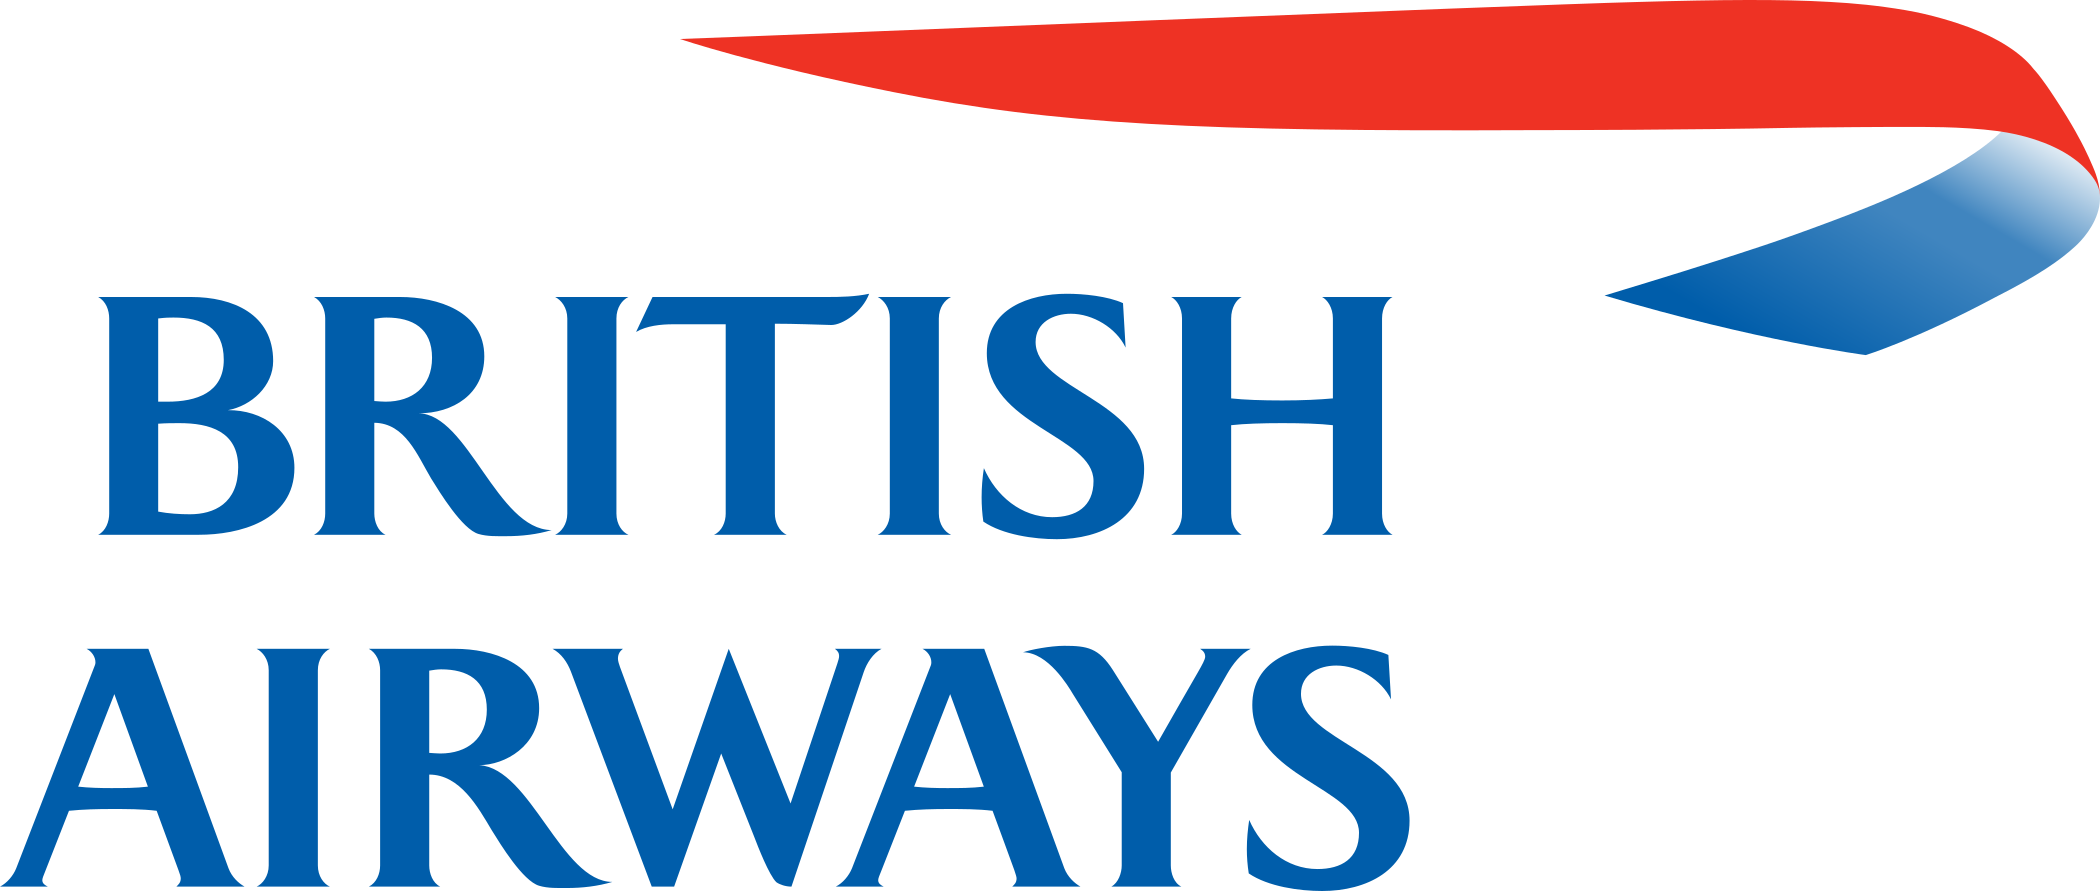 british airways logo 3 - British Airways Logo